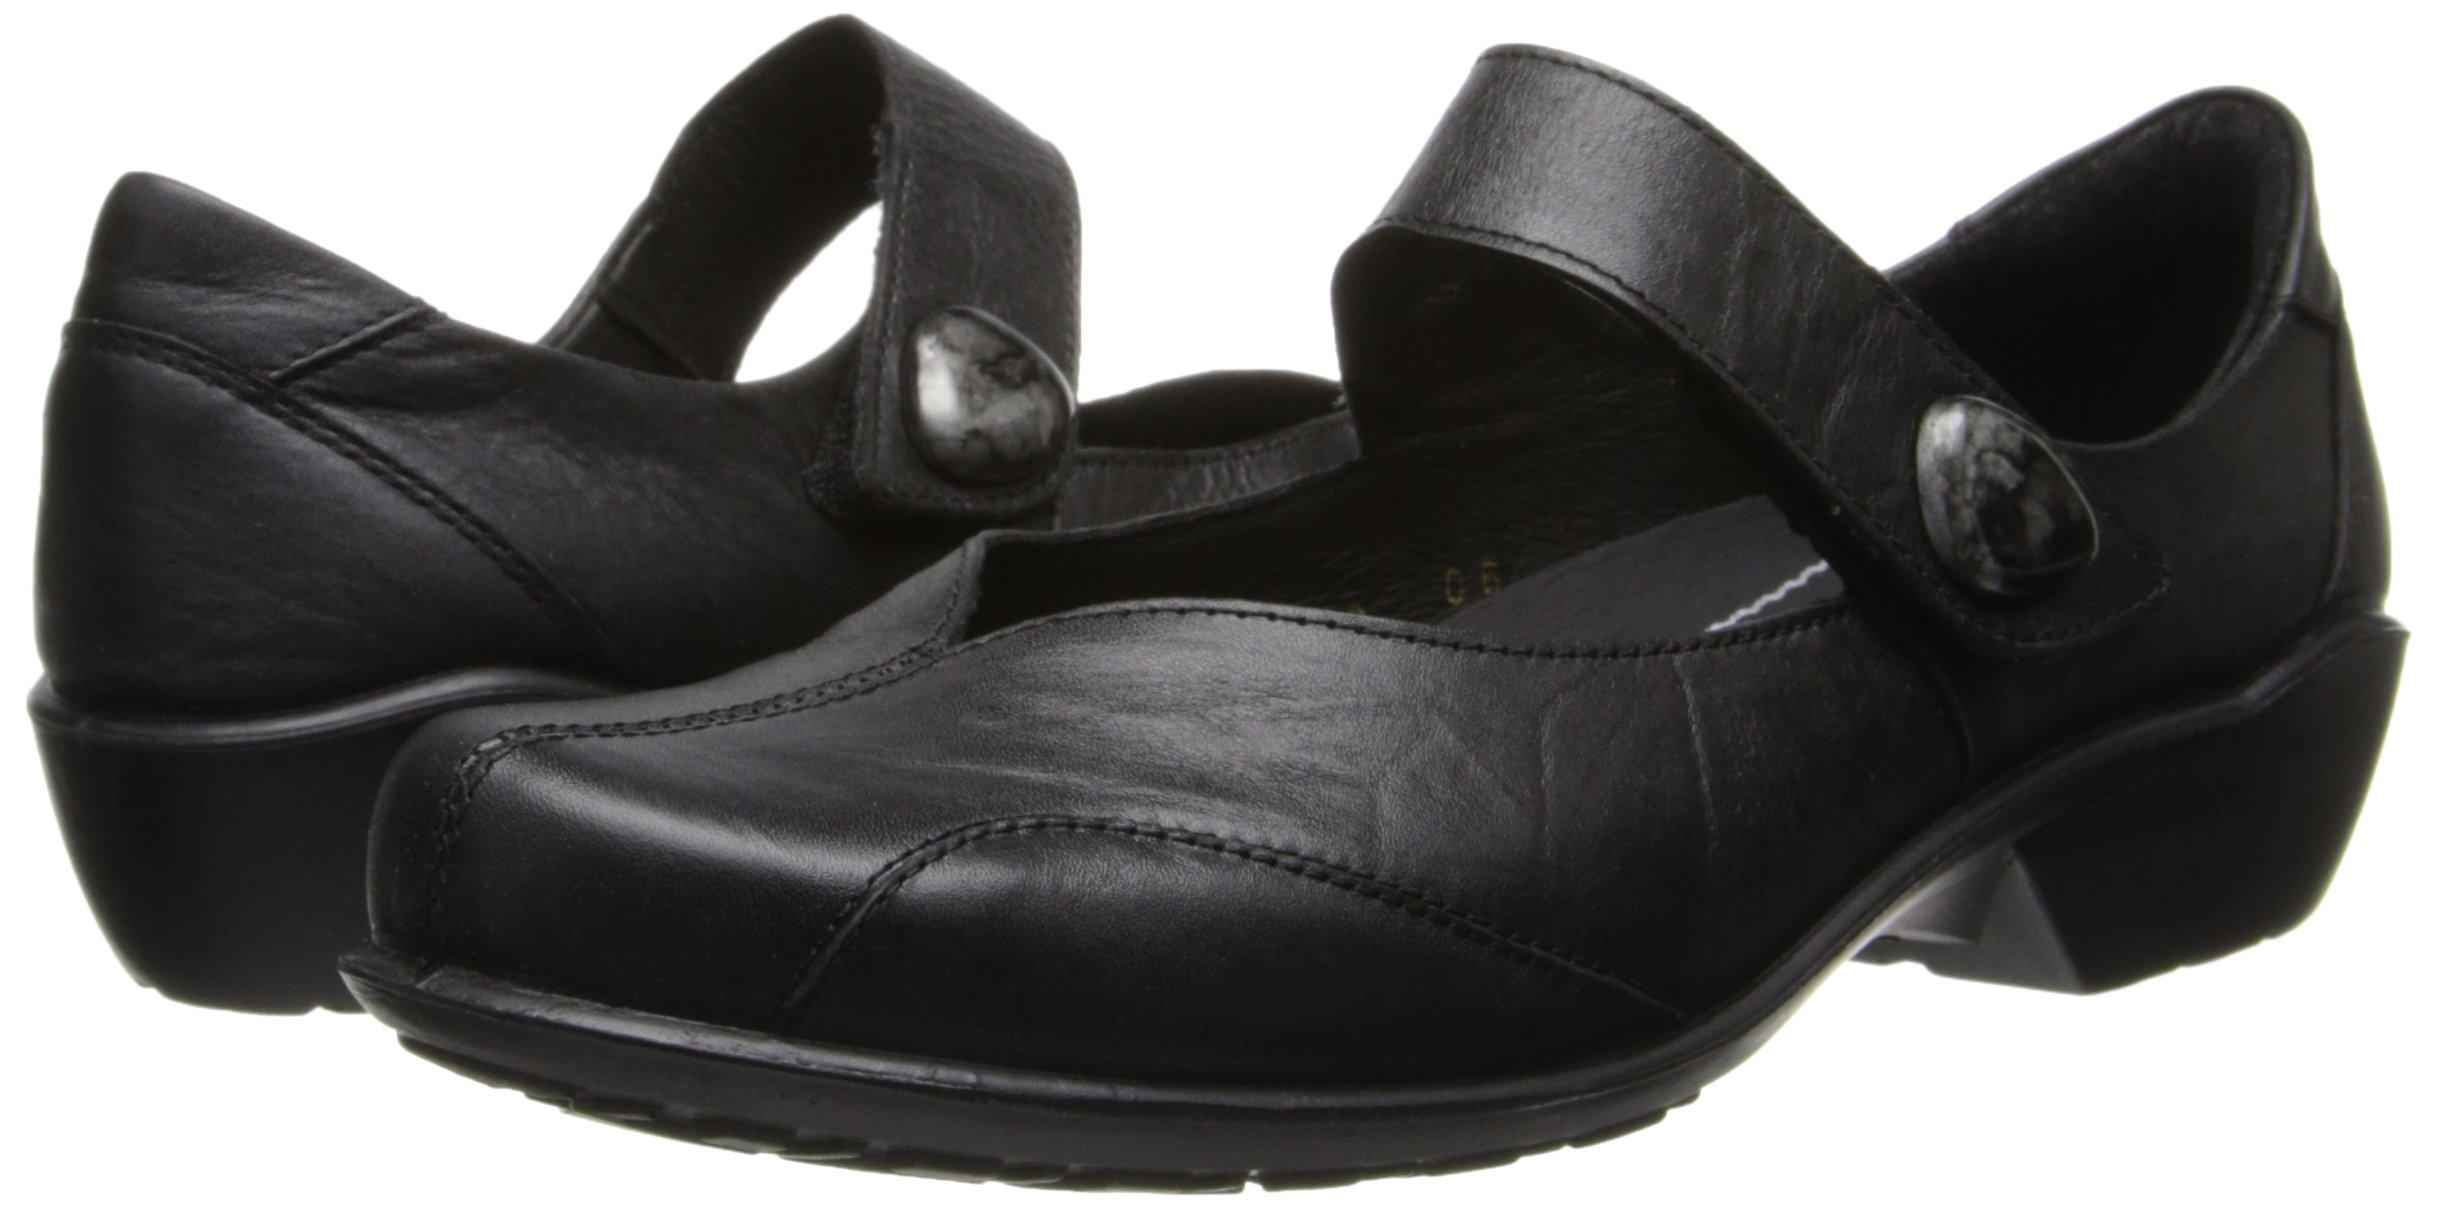 Romika Women's Citylight 87 Mary Jane Flat,Black,39 BR/8-8.5 M US by Romika (Image #6)